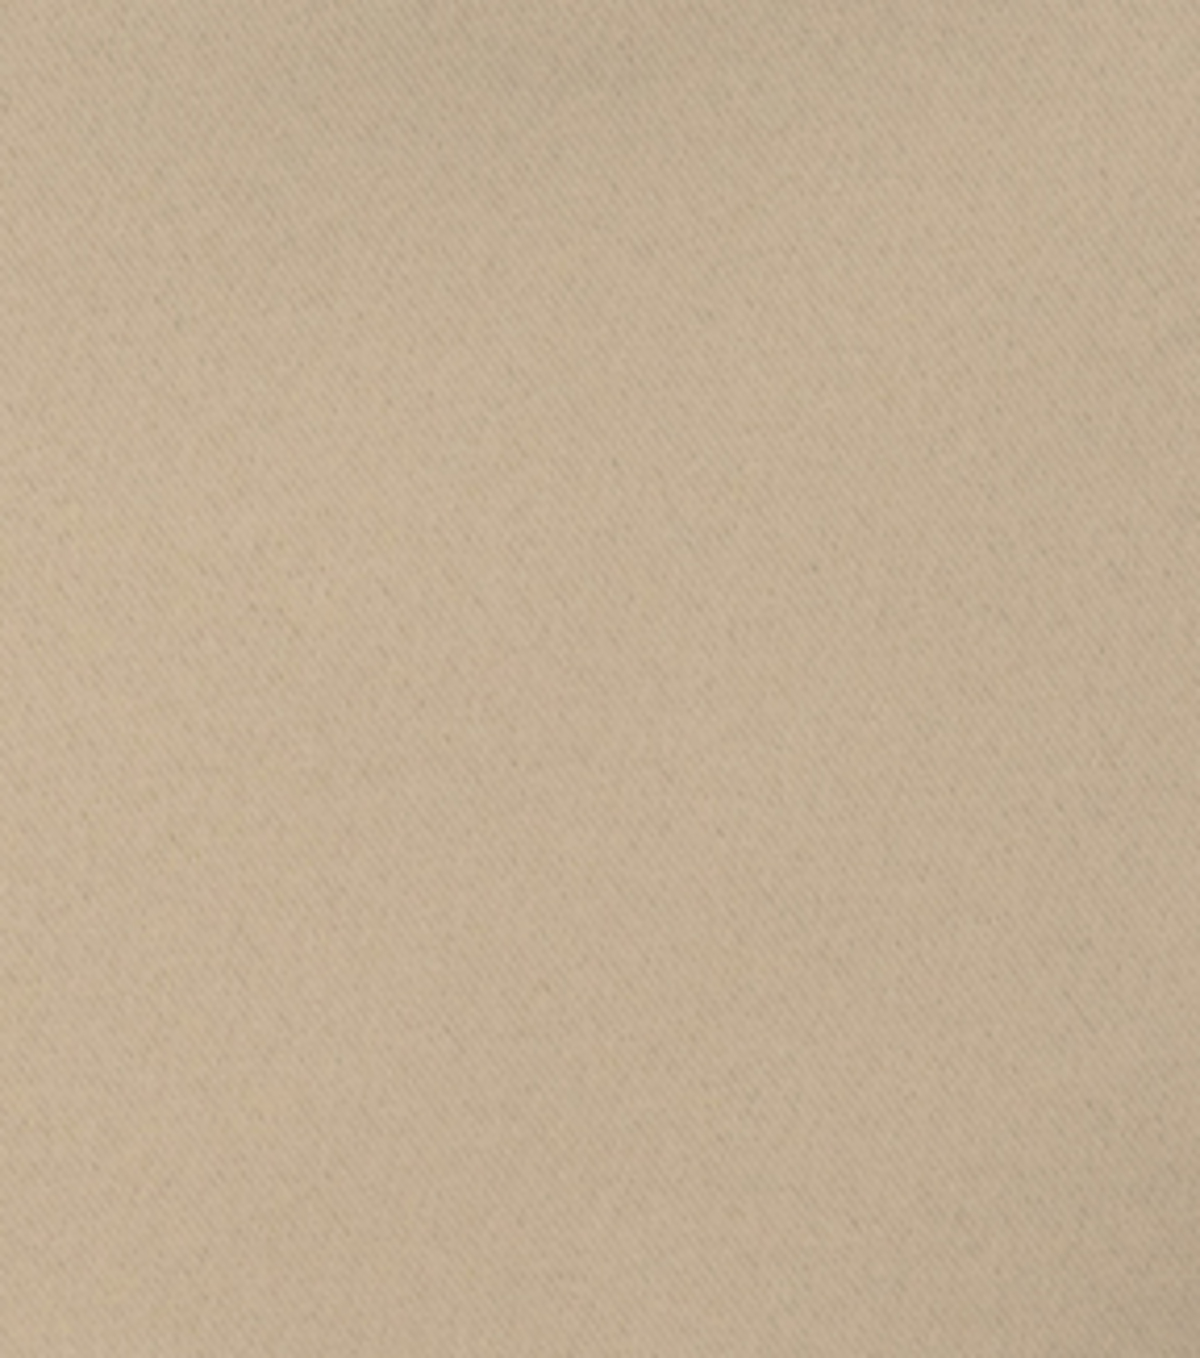 Home Decor 8\u0022x8\u0022 Fabric Swatch-Signature Series Birzai Taupe